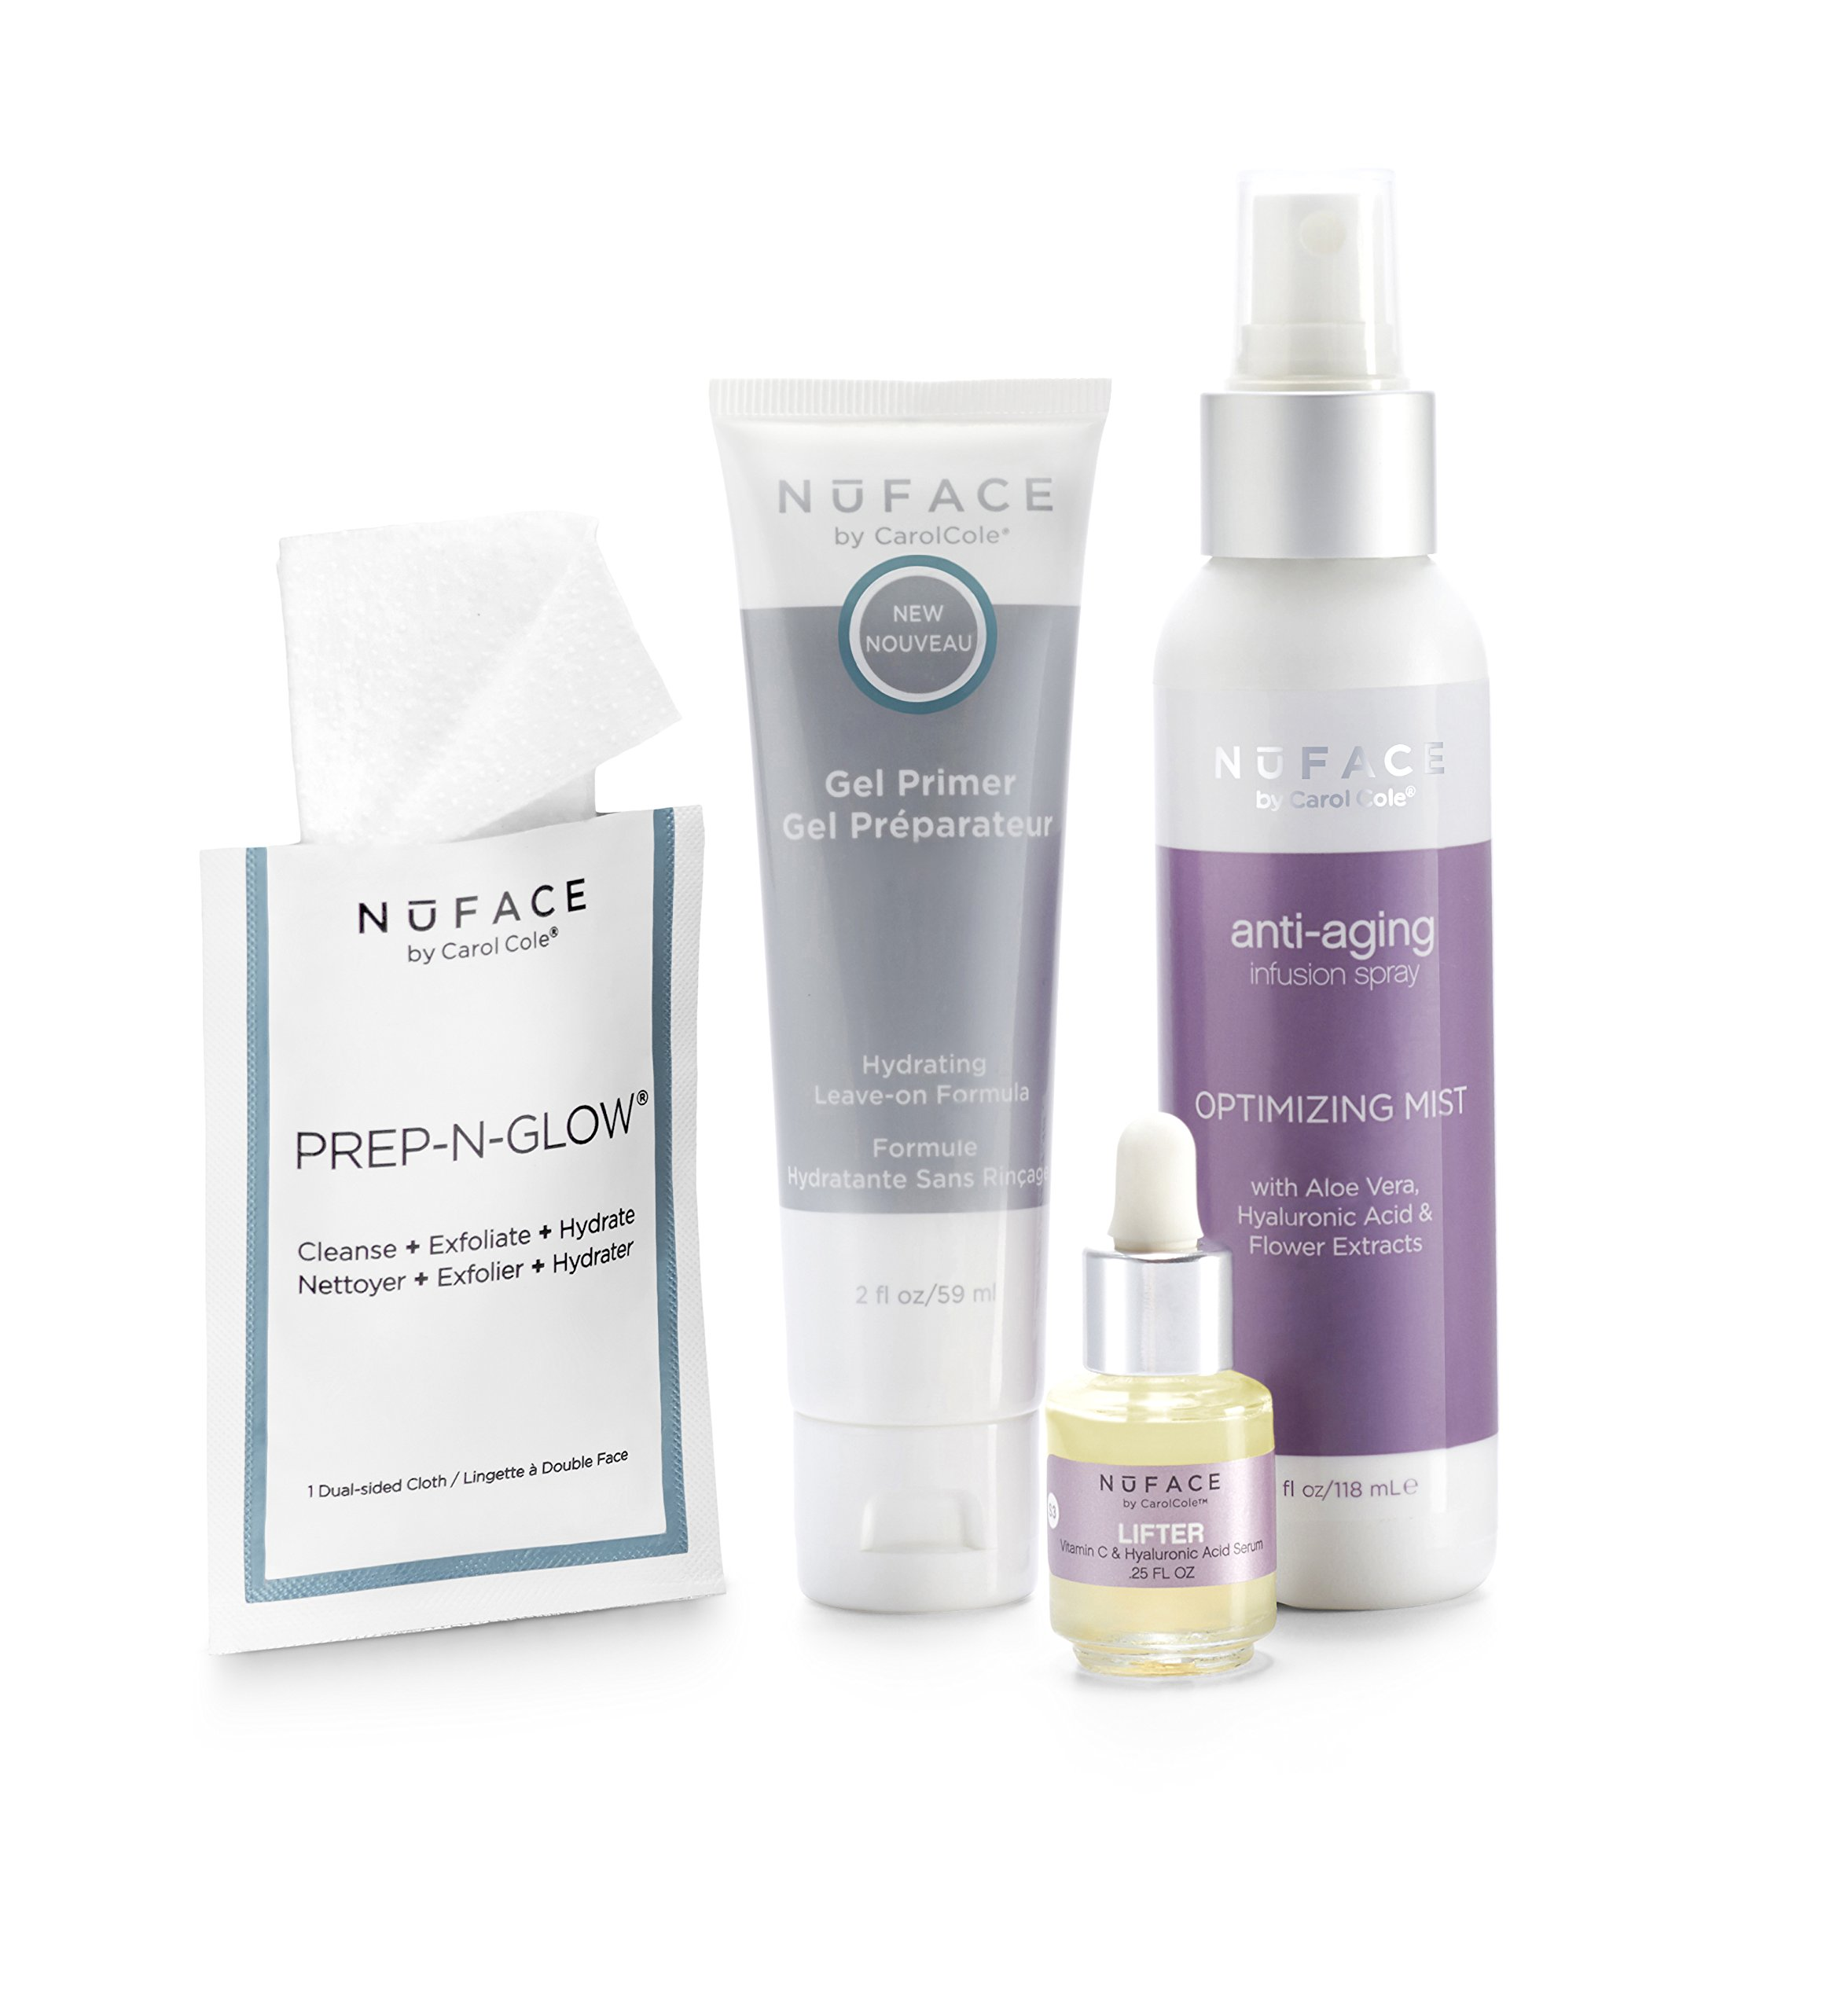 NuFACE Keep Glowing Collection Skincare Kit | Use with NuFACE Device | Smoother Skin, Reduce Wrinkles, Hydrating Renewal | Kit includes: Gel Primer, Optimizing Mist, Serum and Cleansing Cloths